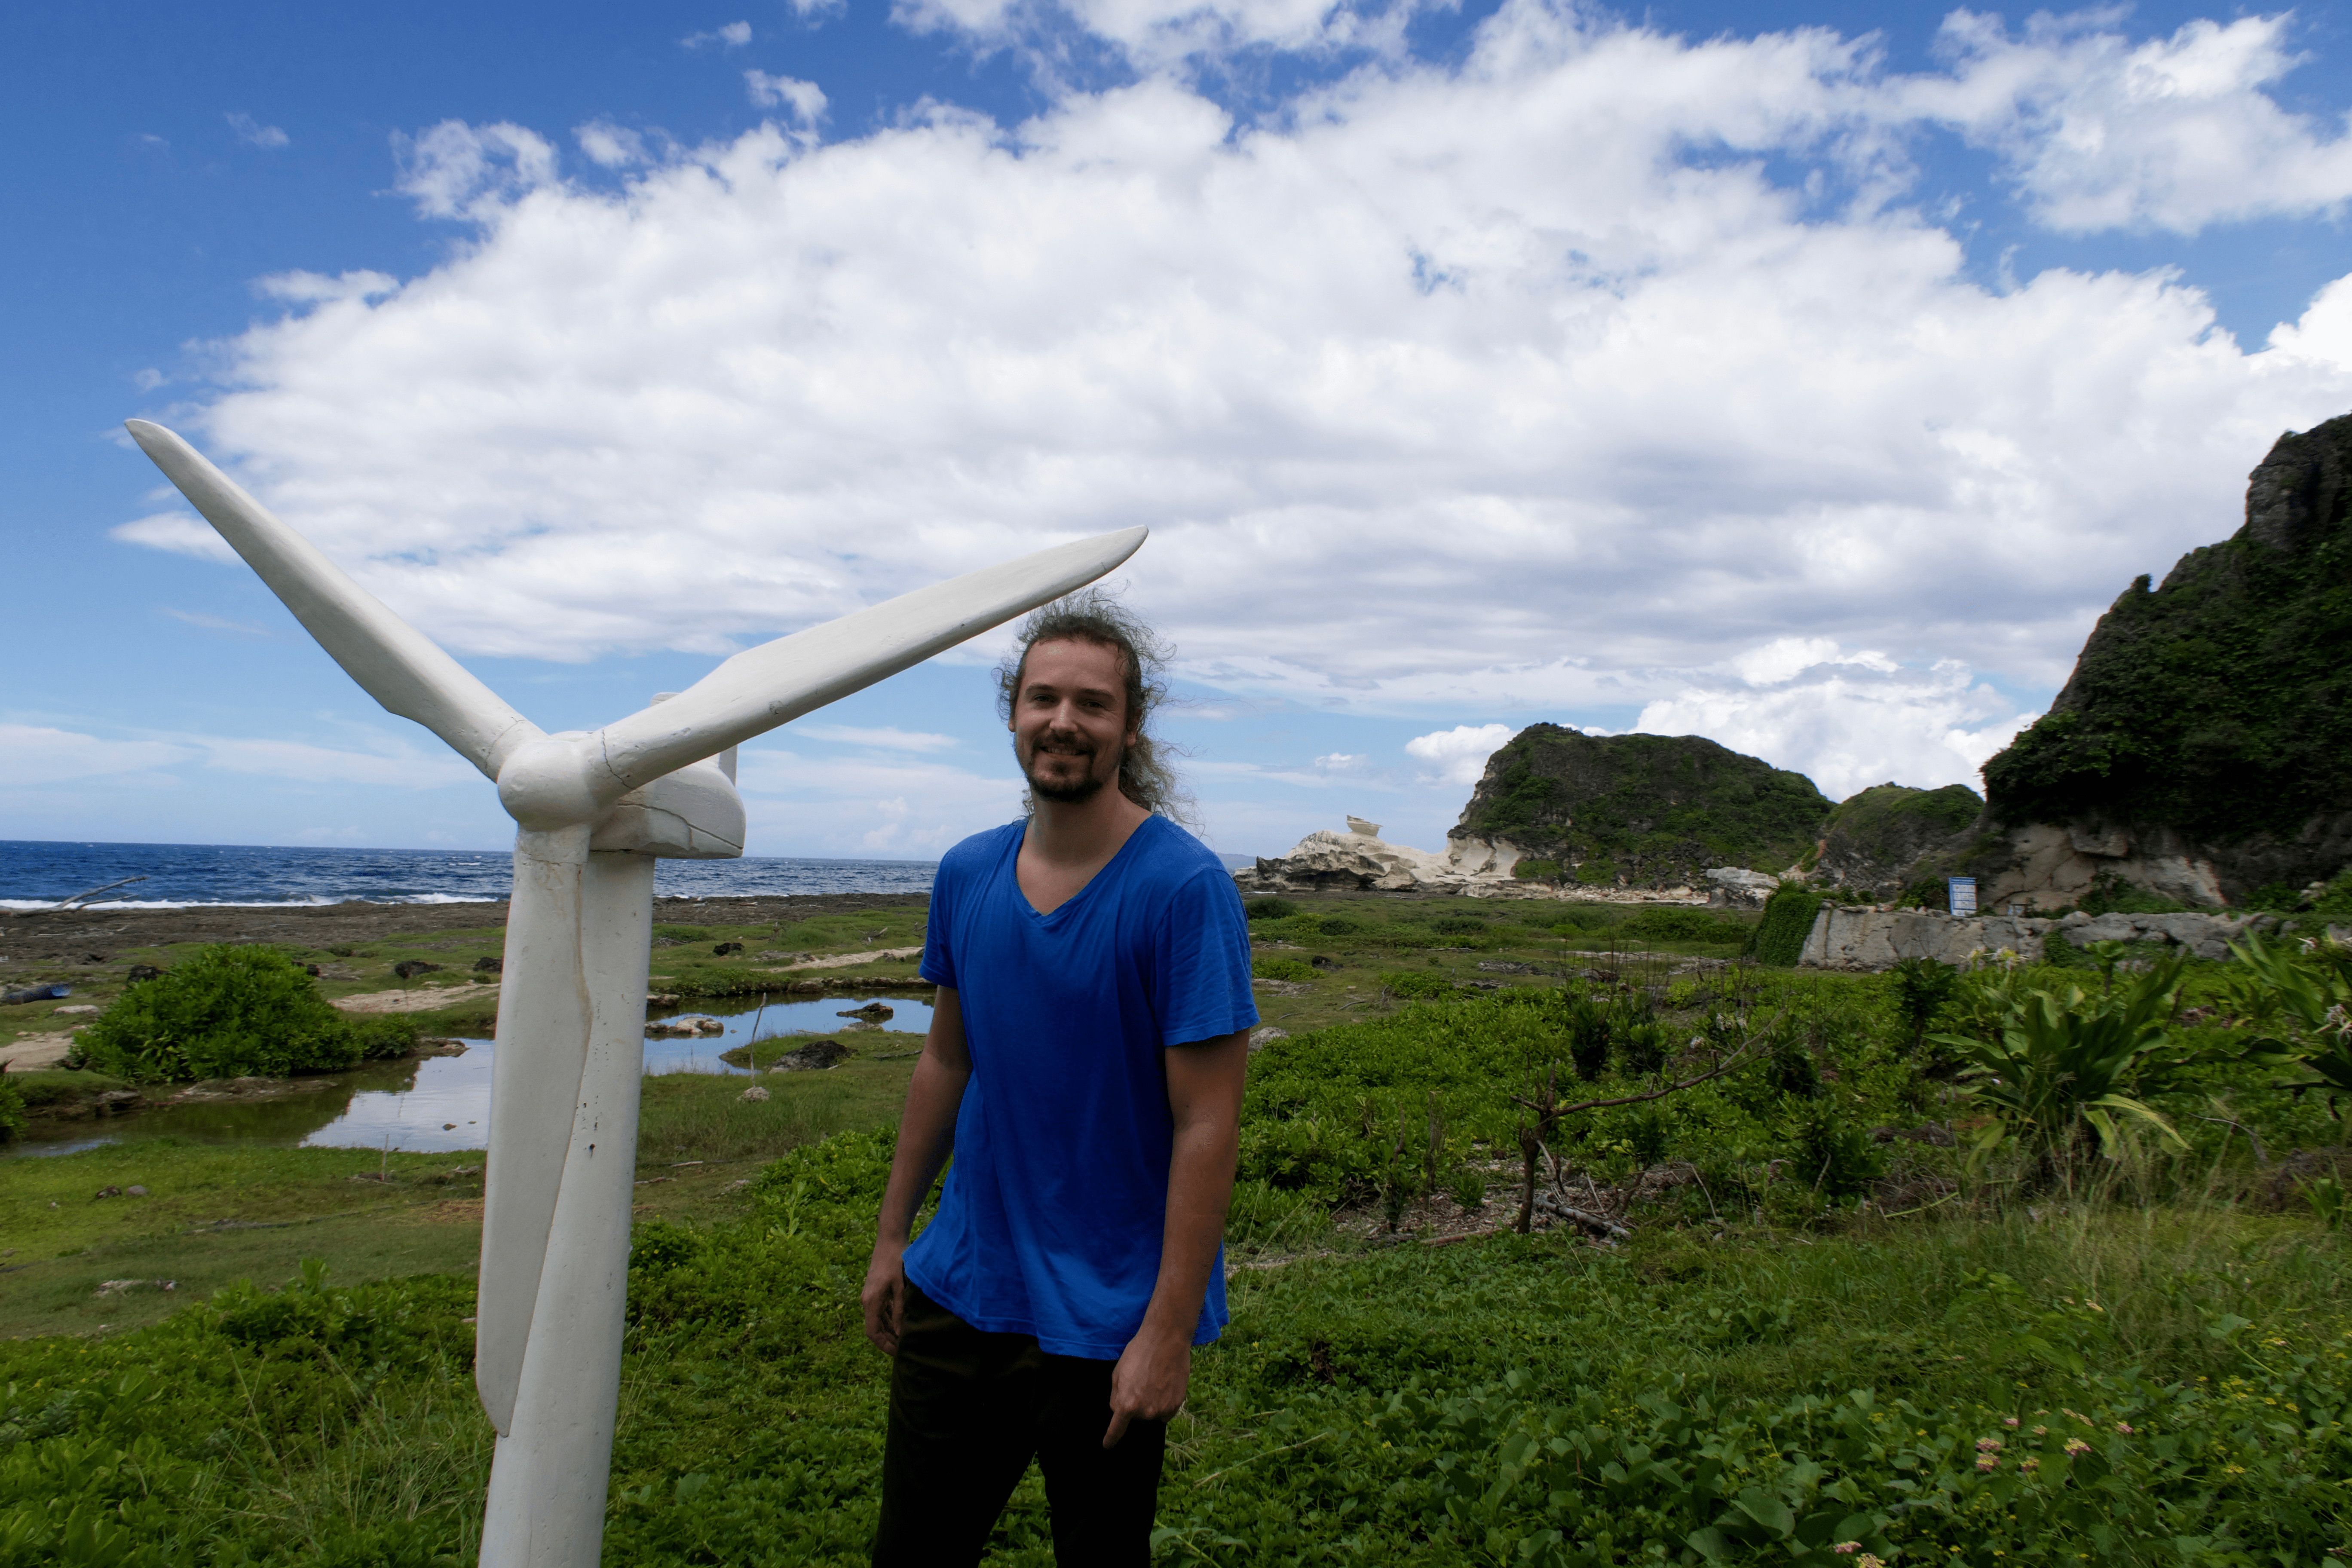 Lenny Through Paradise posing with a mini windmill with the Kapurpurawan rock formation in the background. Pagudpud, Ilocos Norte, Philippines.